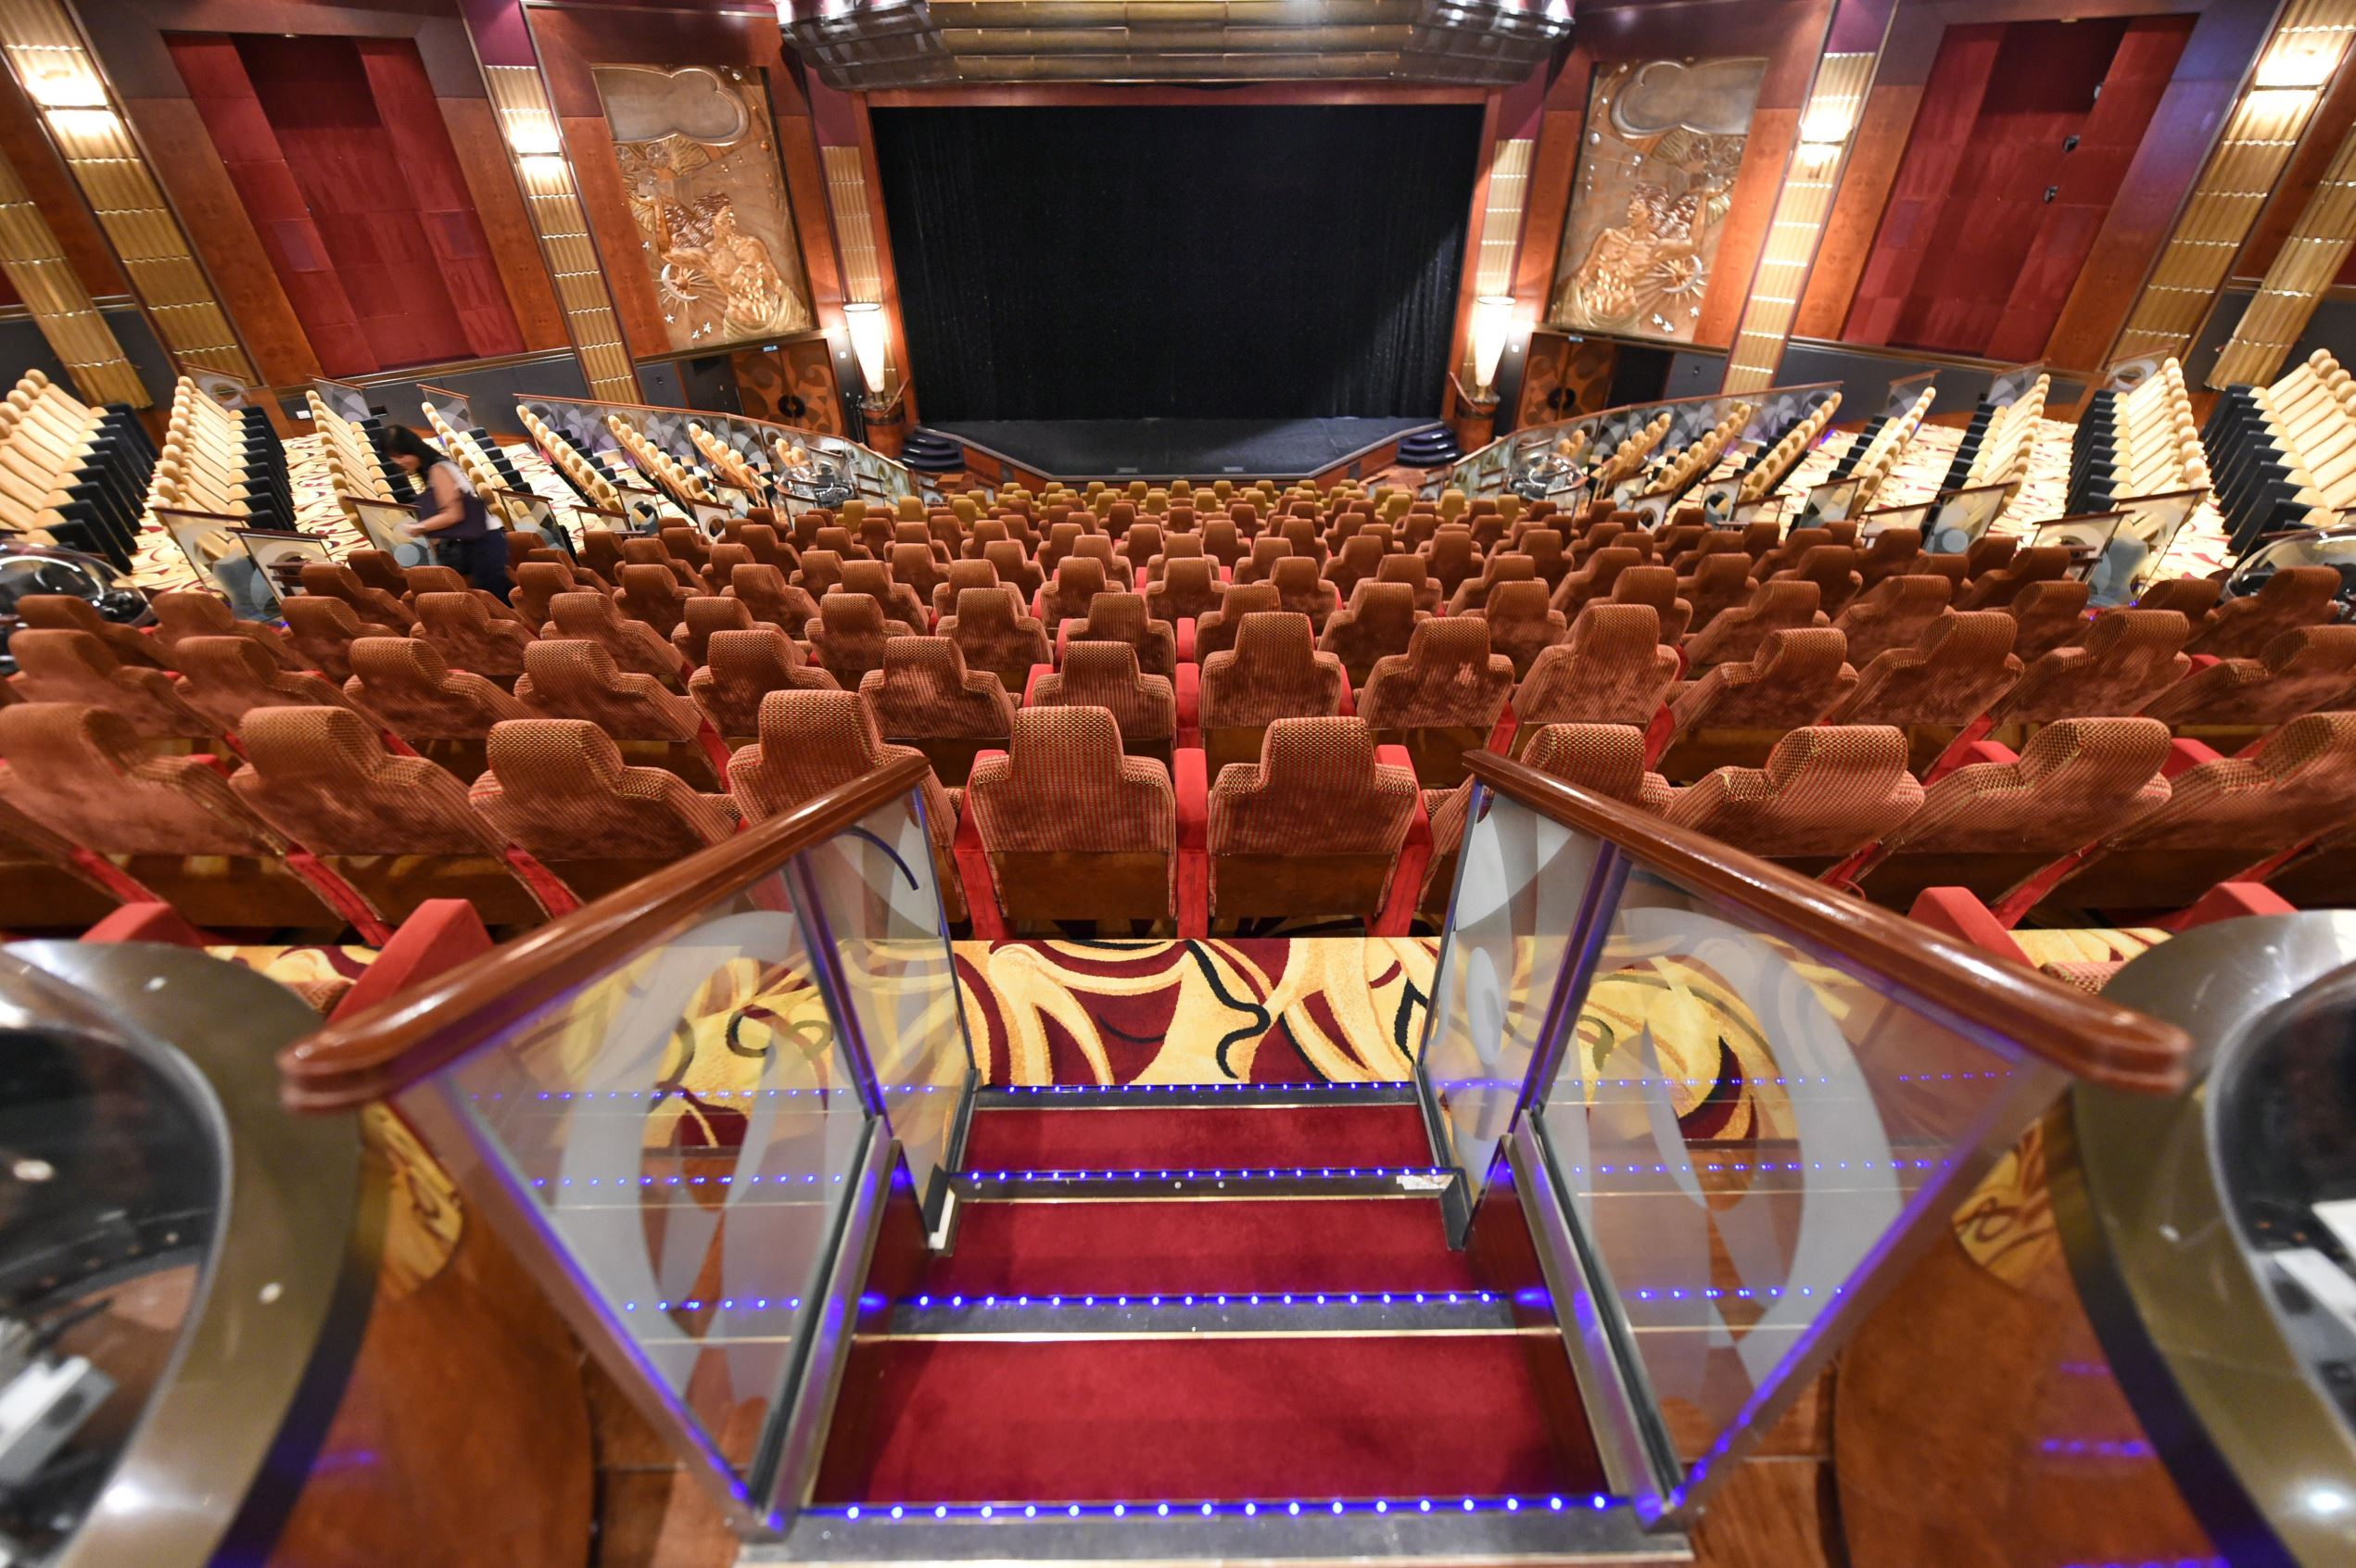 Slide 14 of 31: A view of the cinema theatre inside the world's biggest cruise liner ''Queen Mary 2'' docked at the Marina Bay Cruise Centre in Singapore on February 13, 2015. The Queen Mary 2, known as the grandest ocean liner arrived in Singapore on February 13 for her annual visit as part of an around the world voyage from Southampton. AFP PHOTO / ROSLAN RAHMAN (Photo credit should read ROSLAN RAHMAN/AFP/Getty Images)